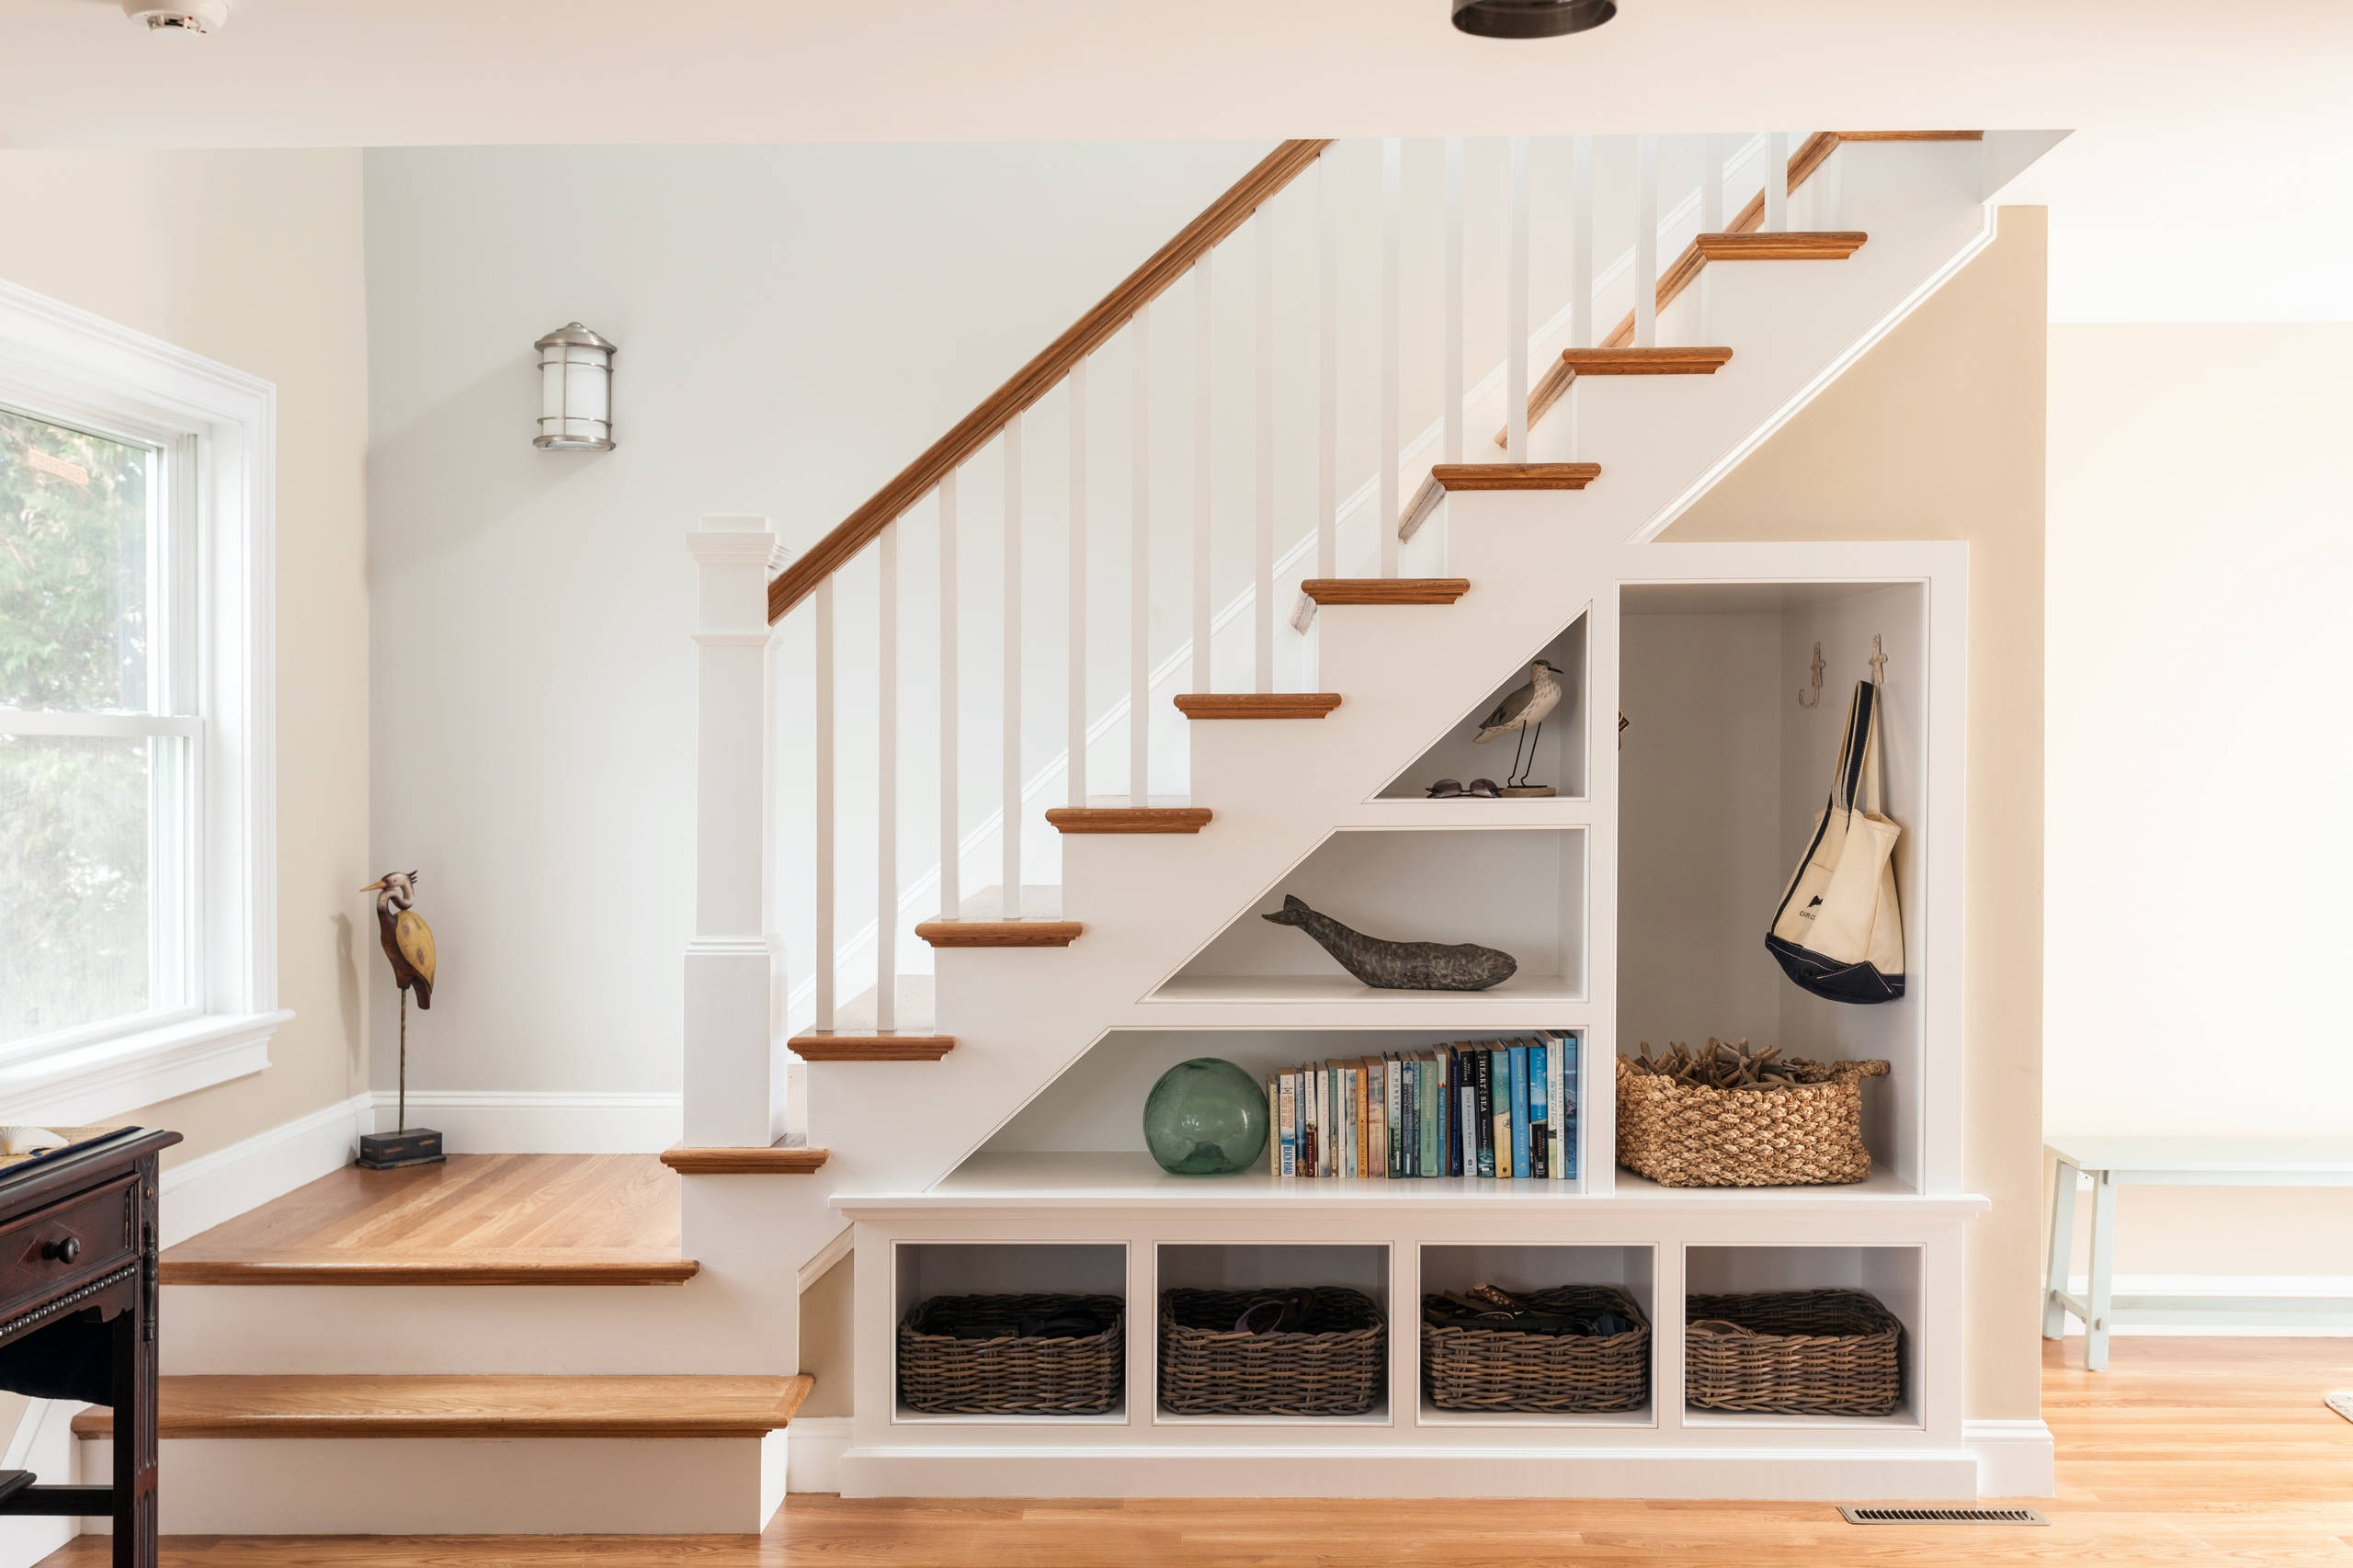 75 Beautiful Staircase Pictures Ideas September 2020 Houzz | Stairs In Home Design | Wall | Luxury | Creative | Home Out | Ultra Modern